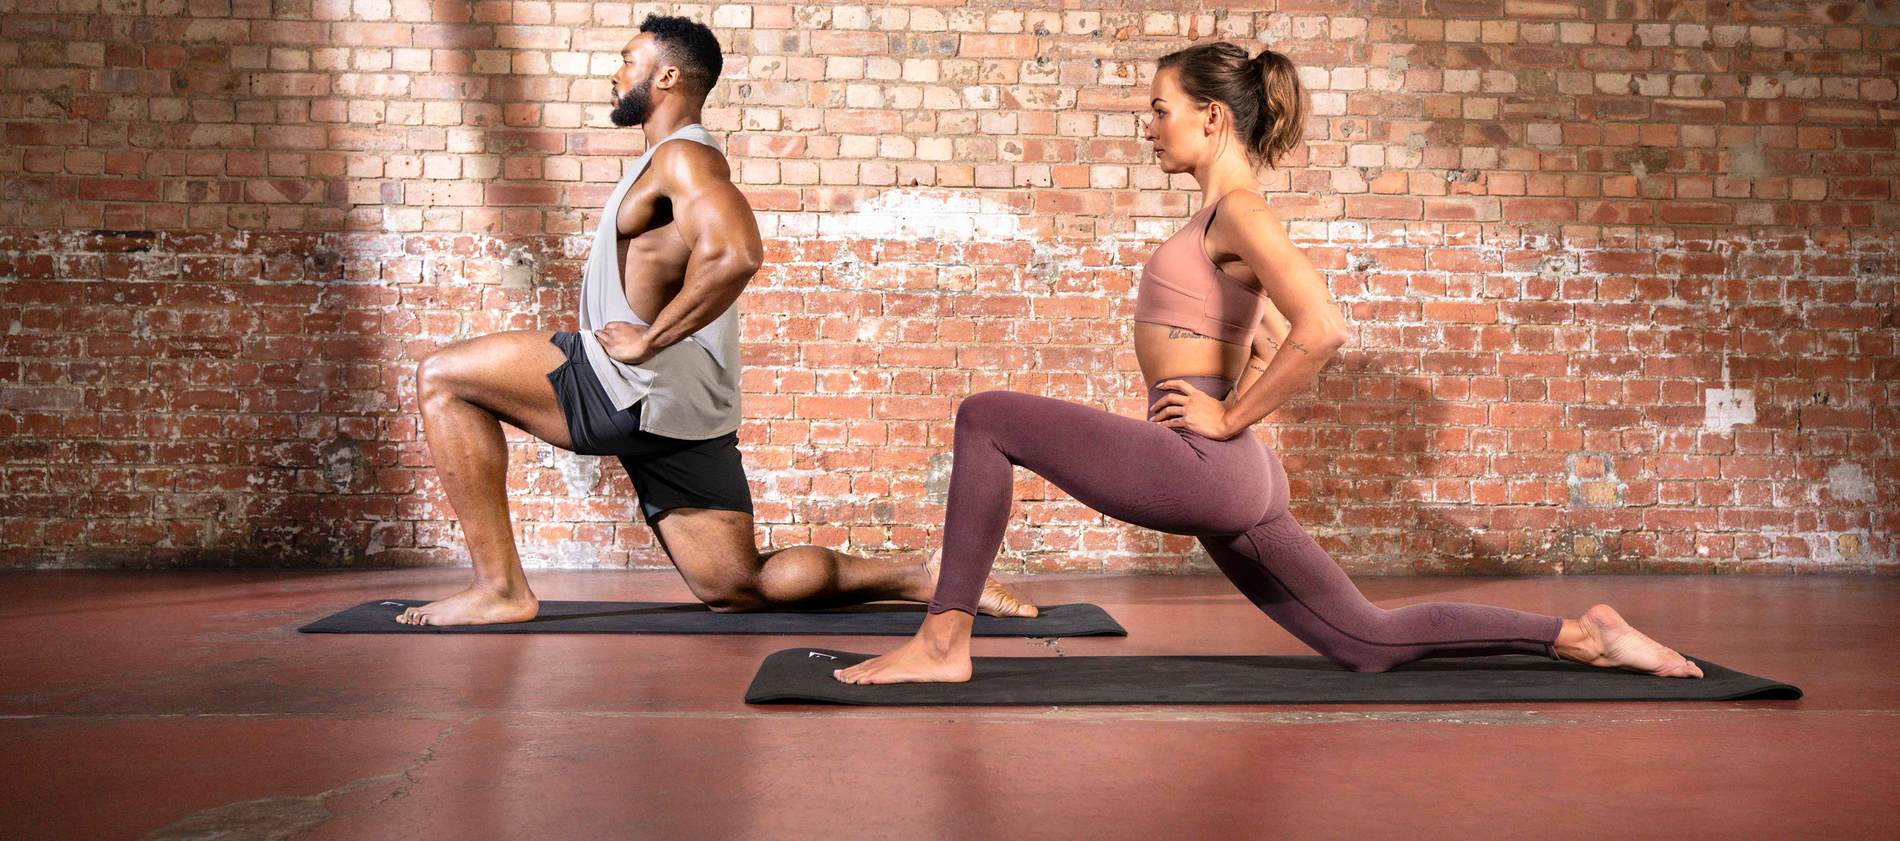 : A male & female model in a Yoga studio stretching on Yoga mats wearing the Gymshark Studio collection.